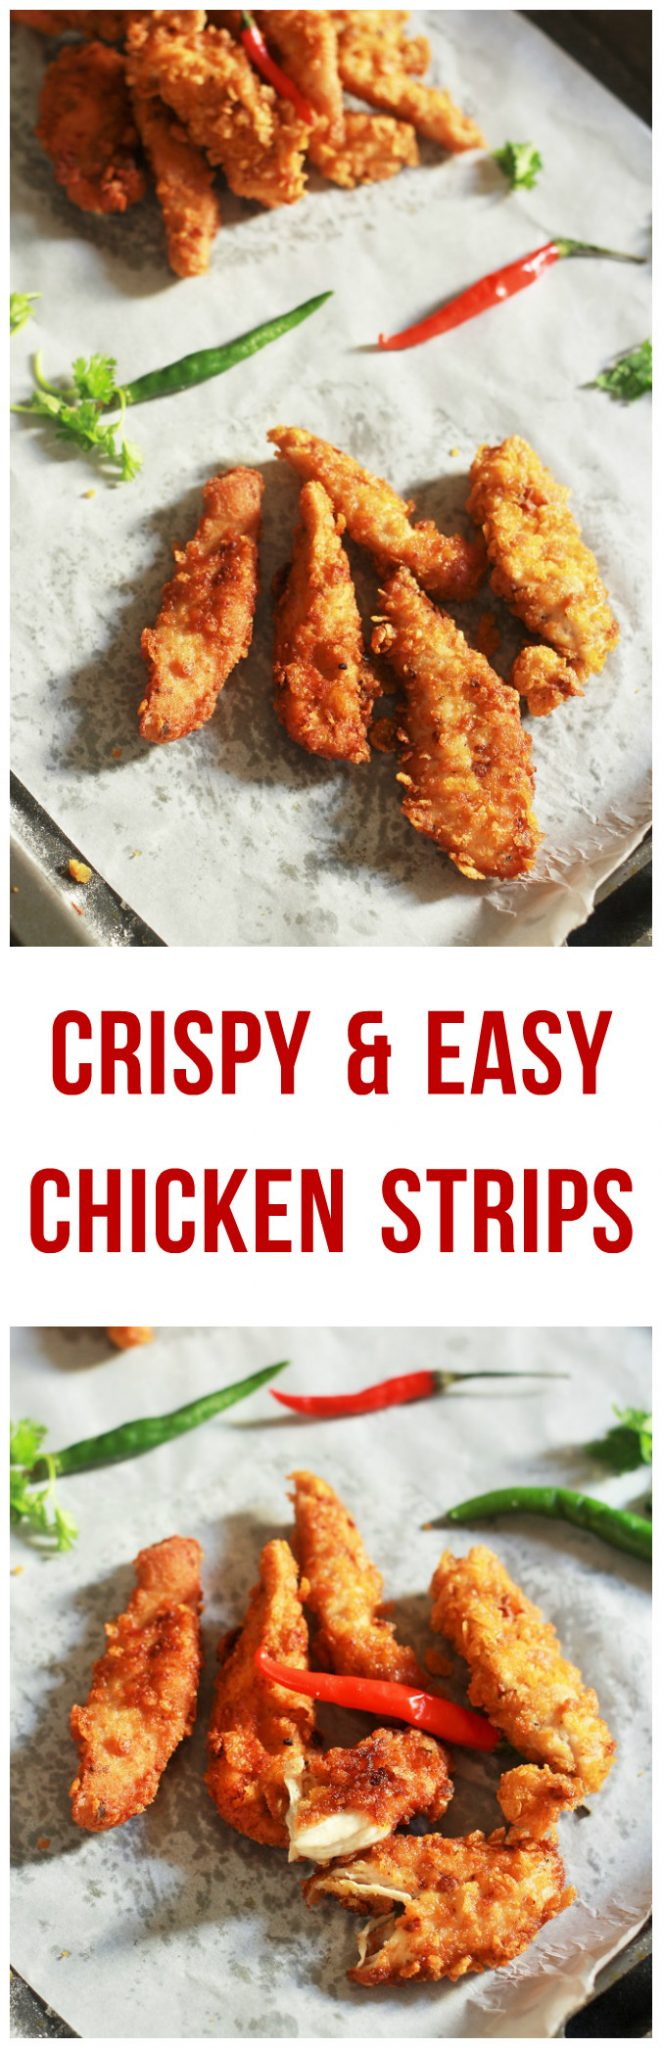 Homemade Crispy Chicken Strips recipe-An absolutely fabulous chicken strips recipe that would leave you asking for more #chickenstrips #chickenrecipe #chickentender #halalrecipe #indianrecipe